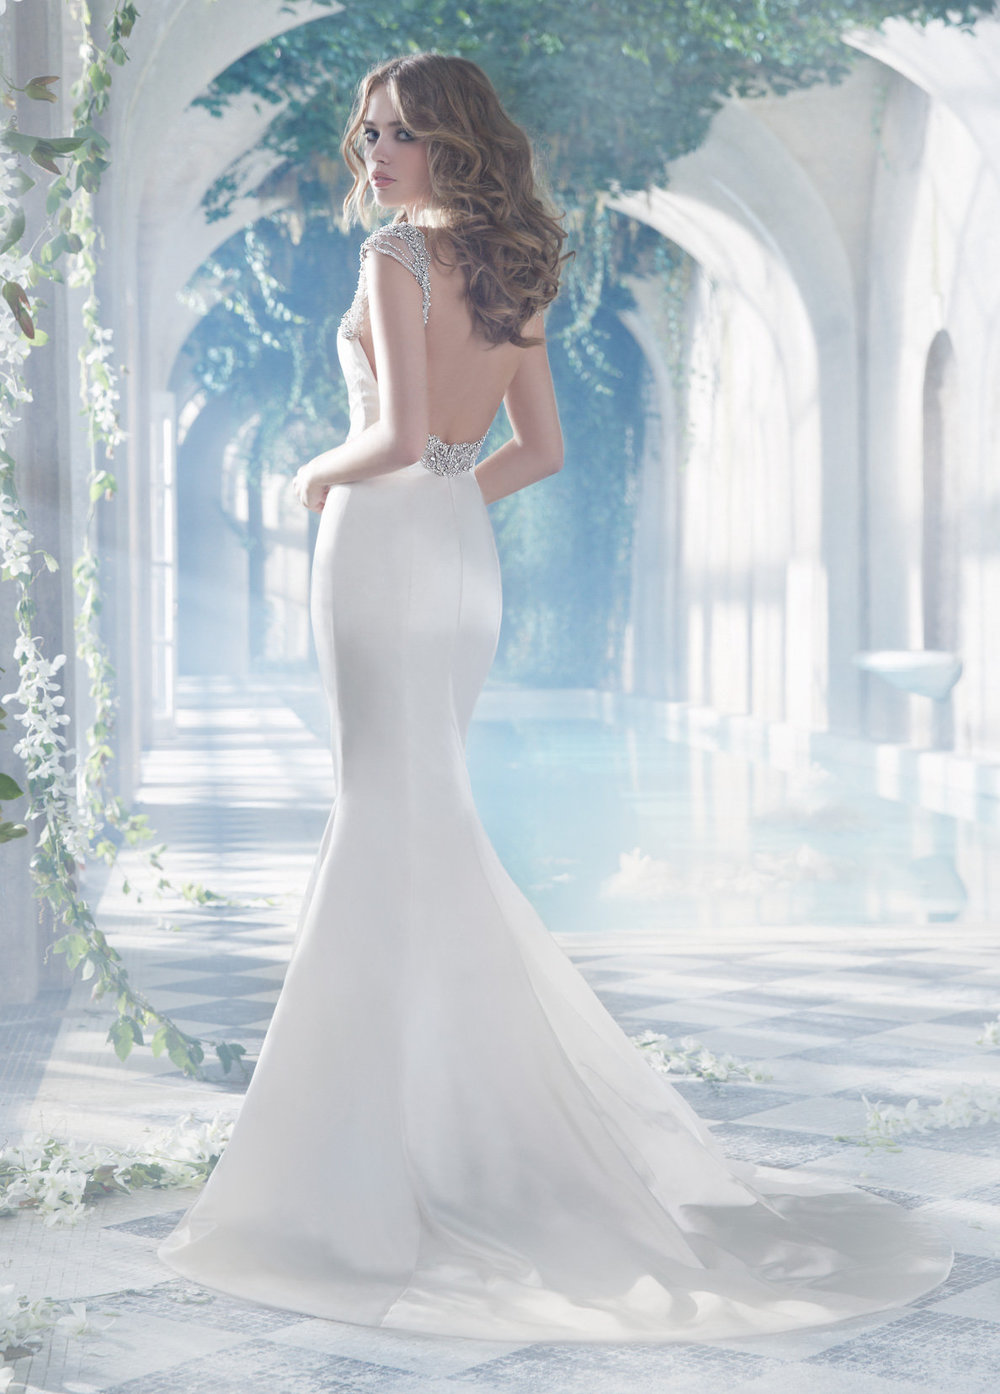 alvina-valenta-bridal-silk-satin-gown-v-neckline-draped-natural-waist-cap-sleeve-low-back-9410_lg.jpg